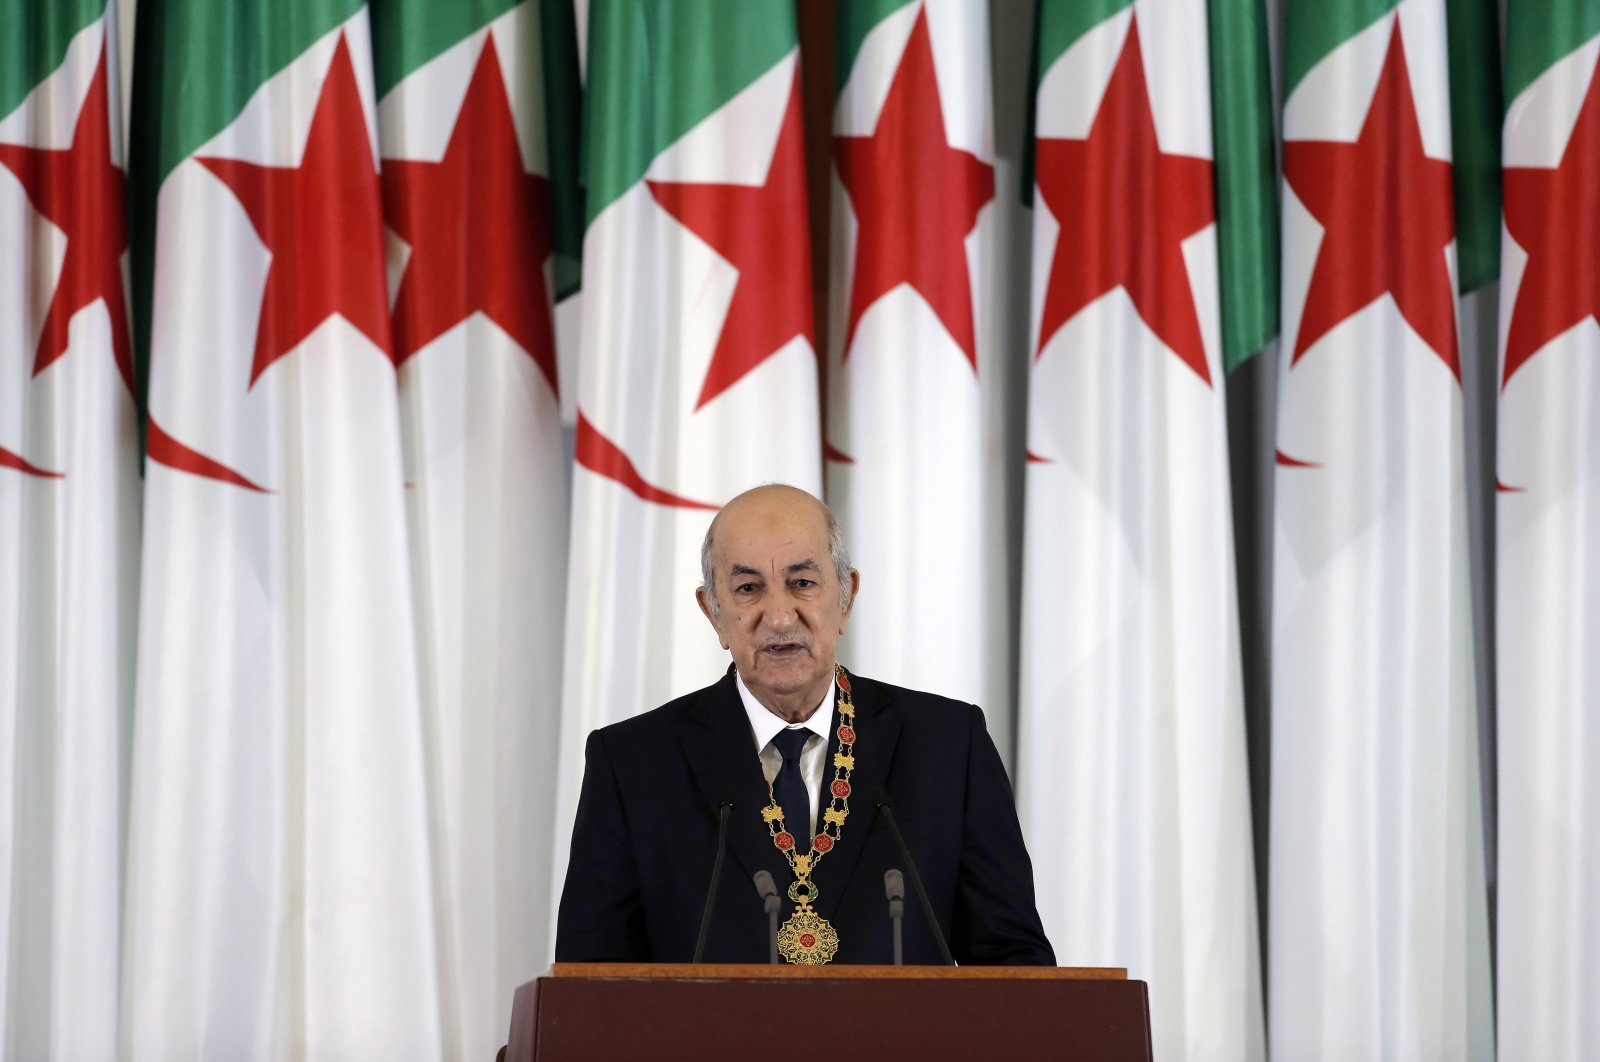 Algerian President Abdelmadjid Tebboune delivers a speech during an inauguration ceremony in the presidential palace, Algiers, Algeria, Thursday, Dec. 19, 2019. (AP File Photo)